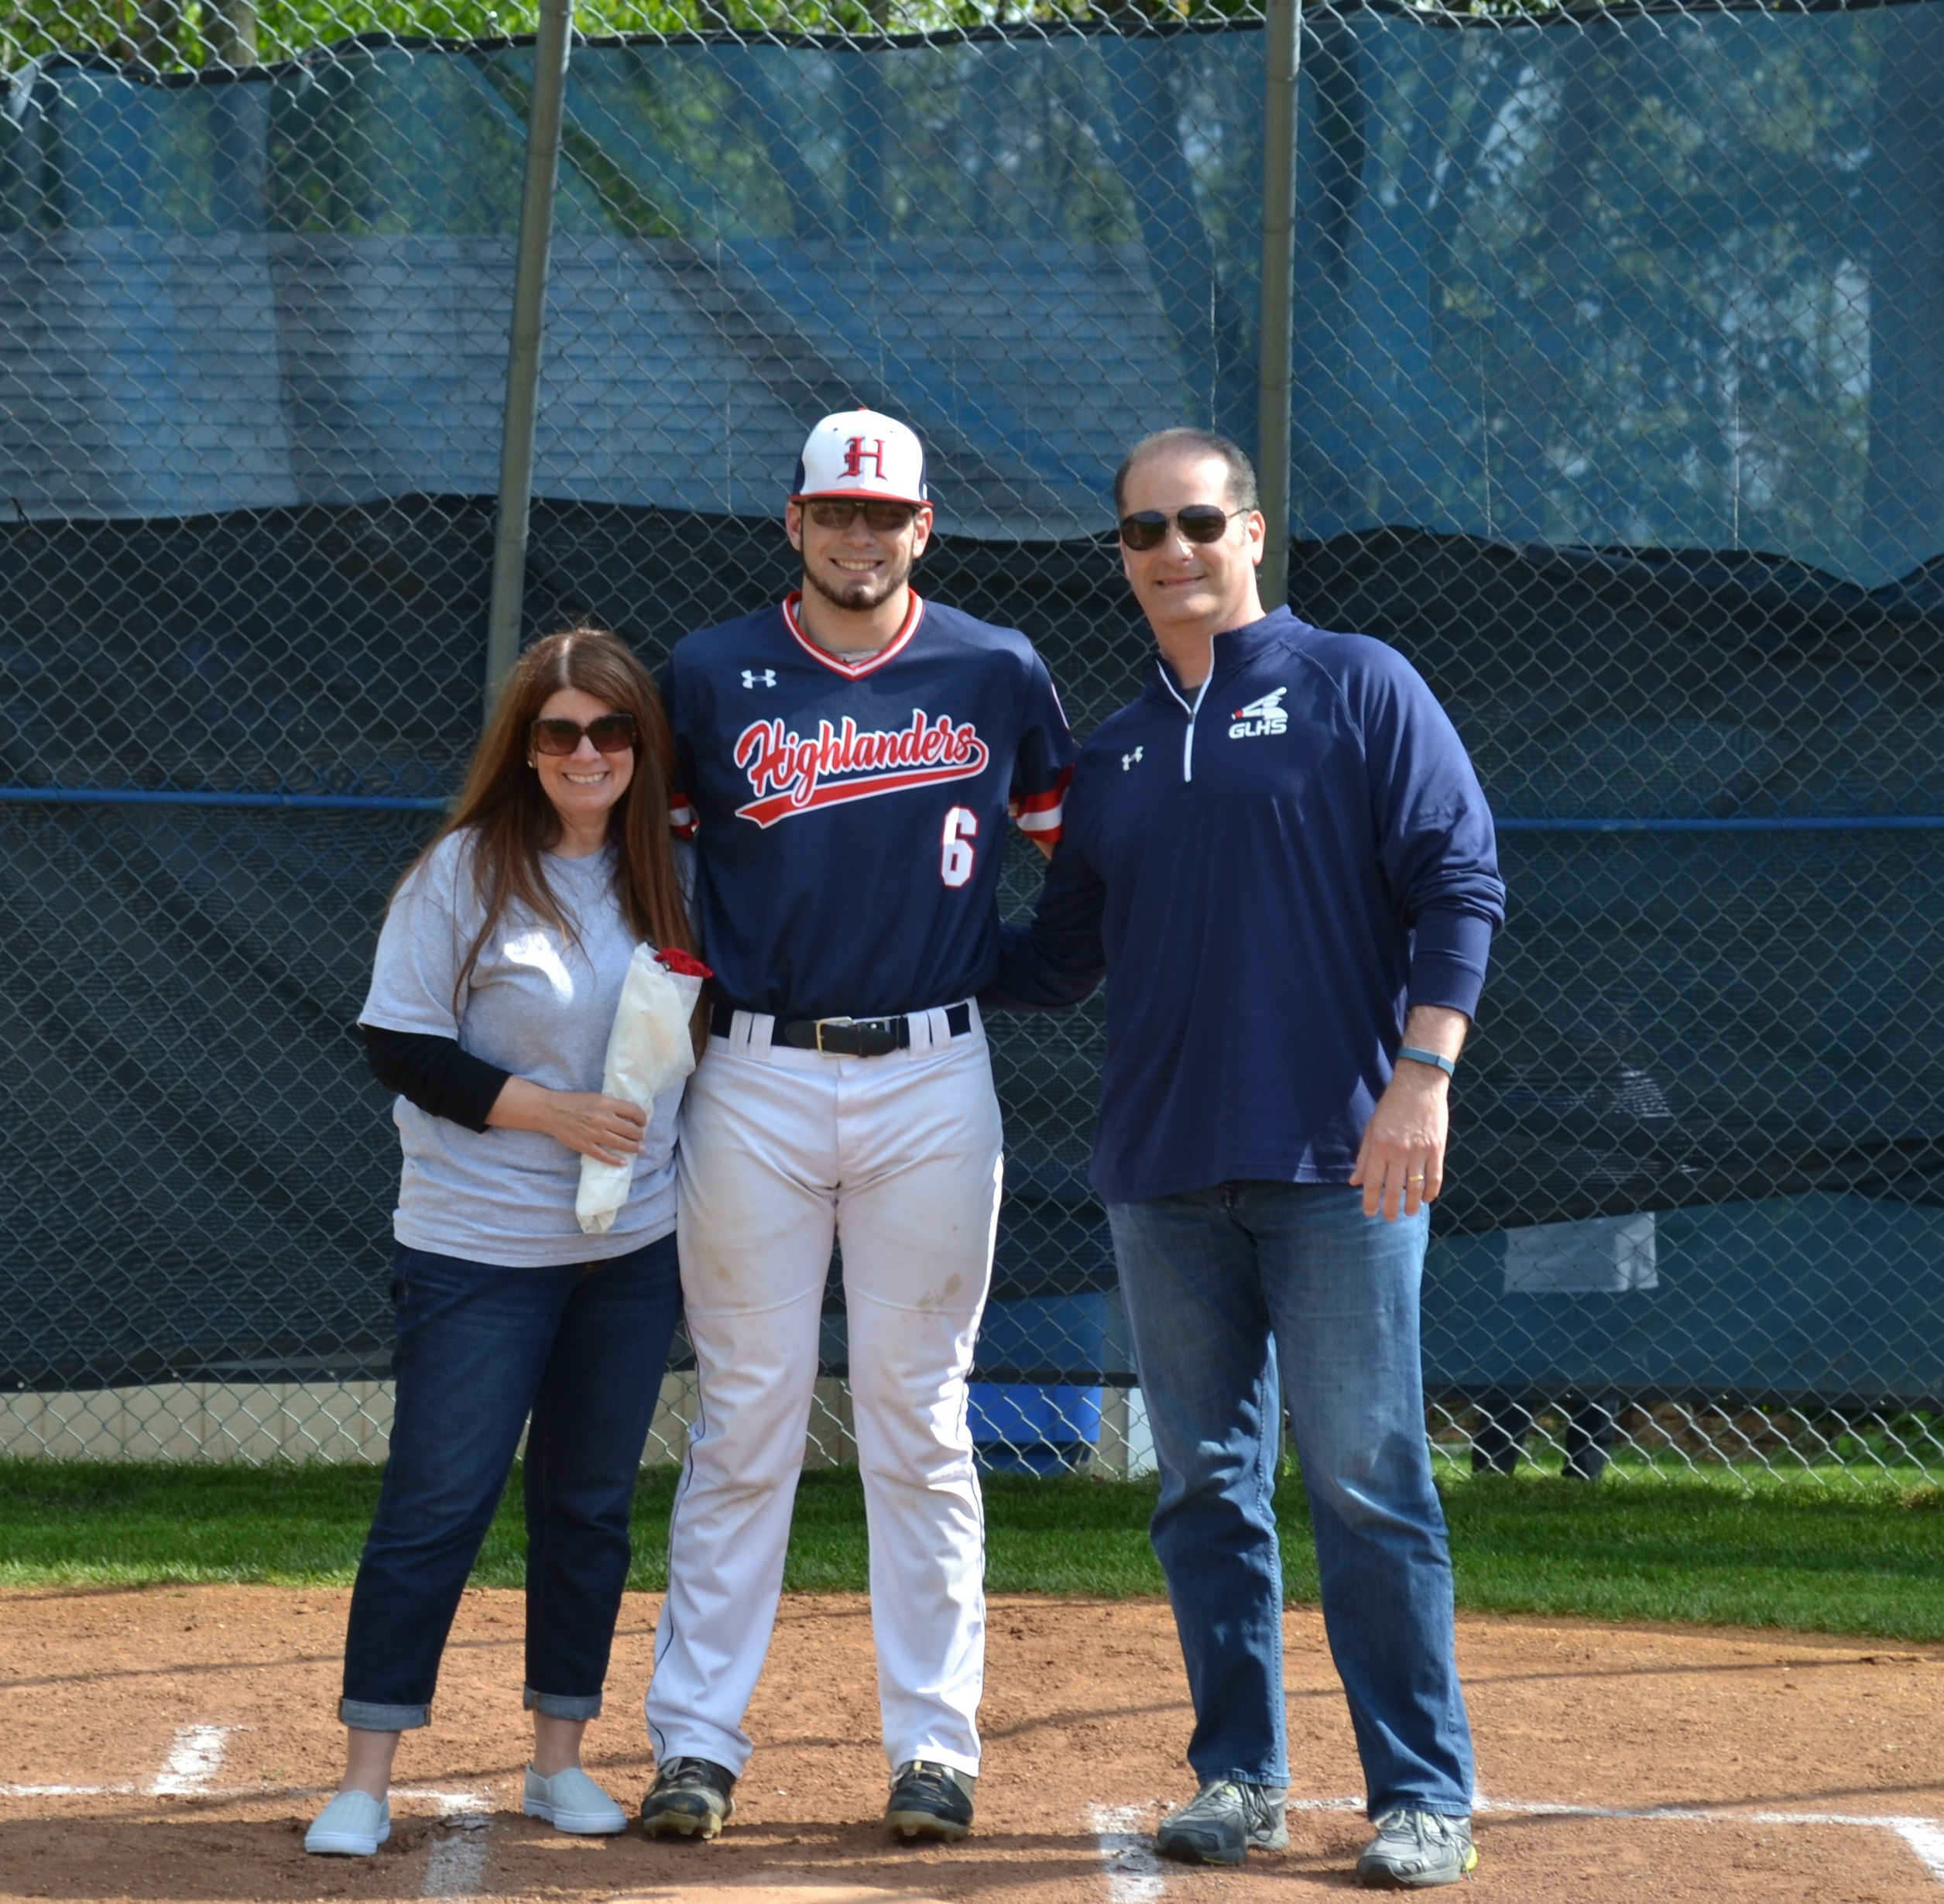 2b4f83e5e9641bc71983_GL_vs._Parsippany_May_19_2016_Senior_Day_Bruno_Family.jpg